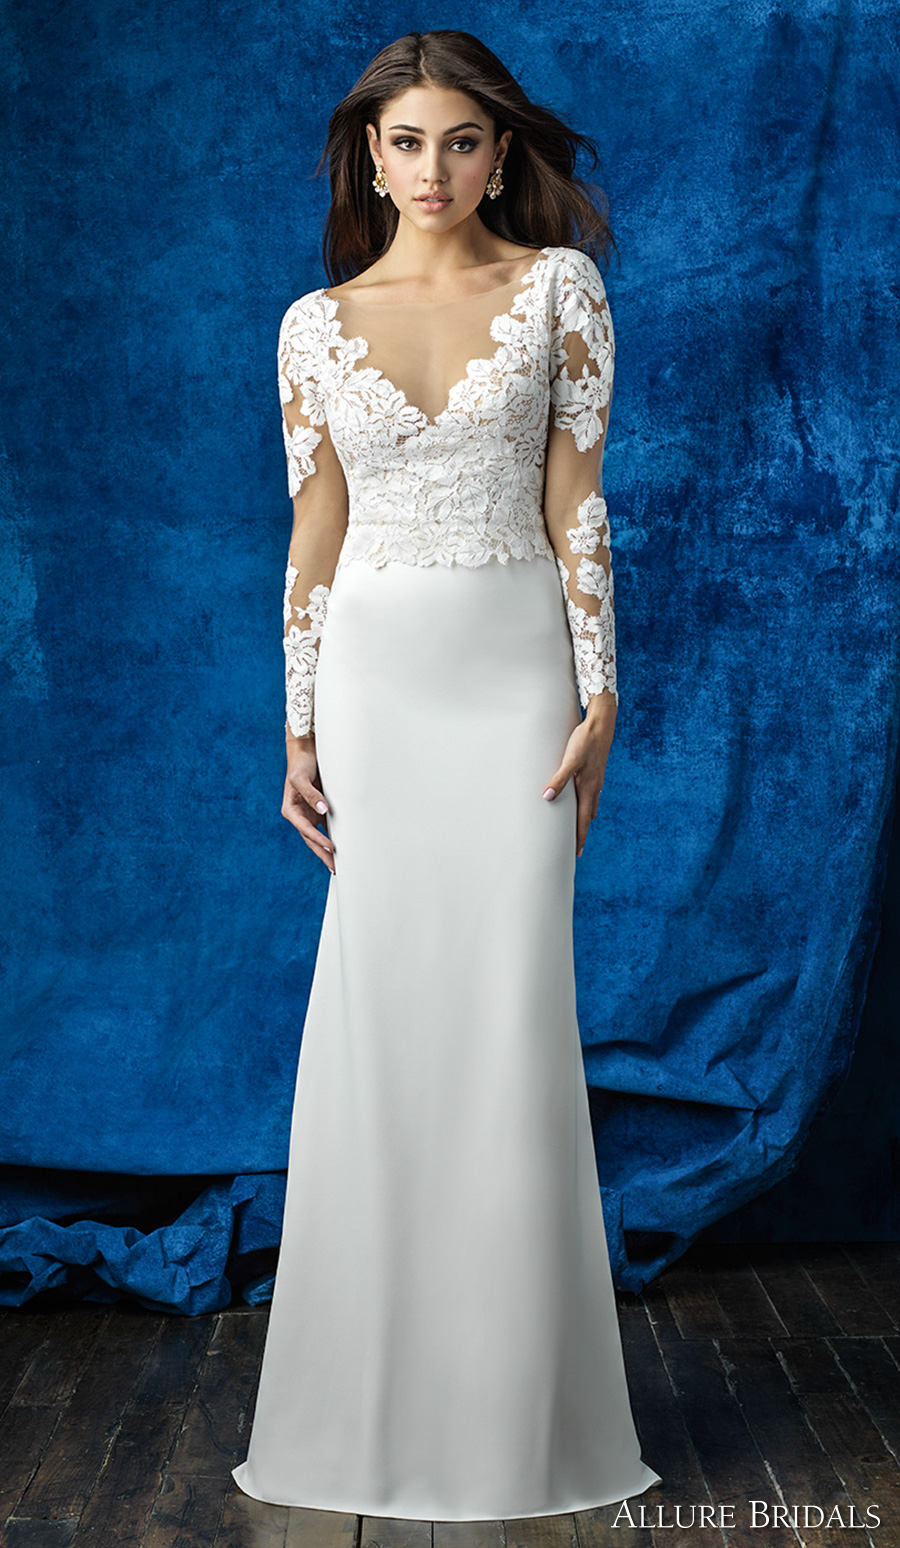 Wedding Dress Create.Allure Bridals Mix And Match Collection Create Gorgeous Custom